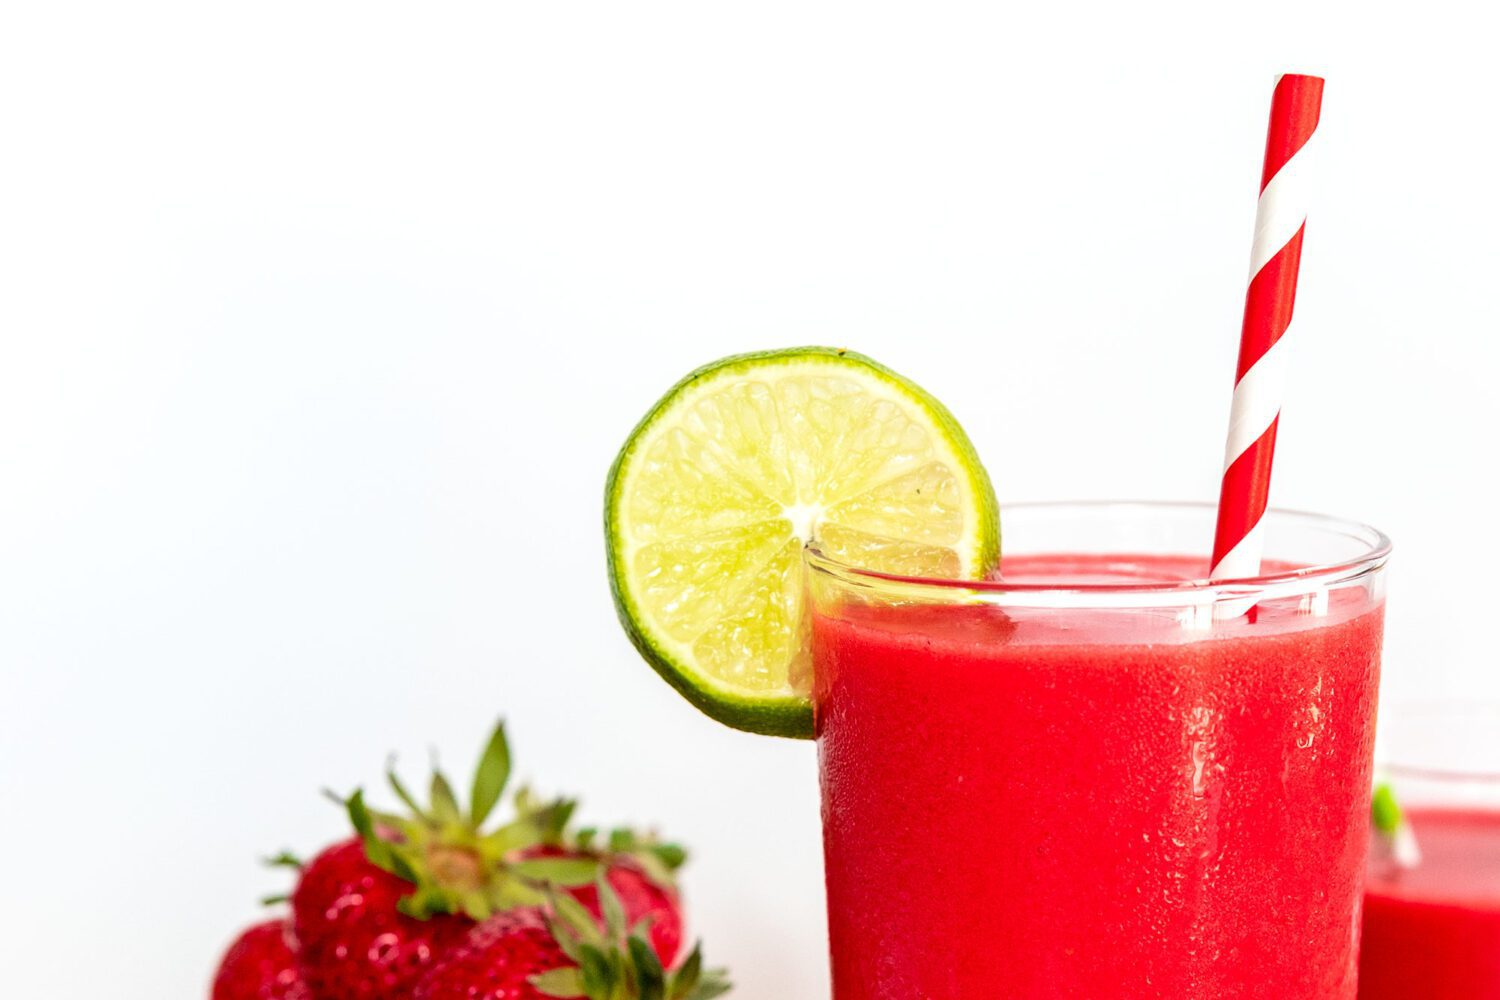 close up of a glass with a red fruity drink